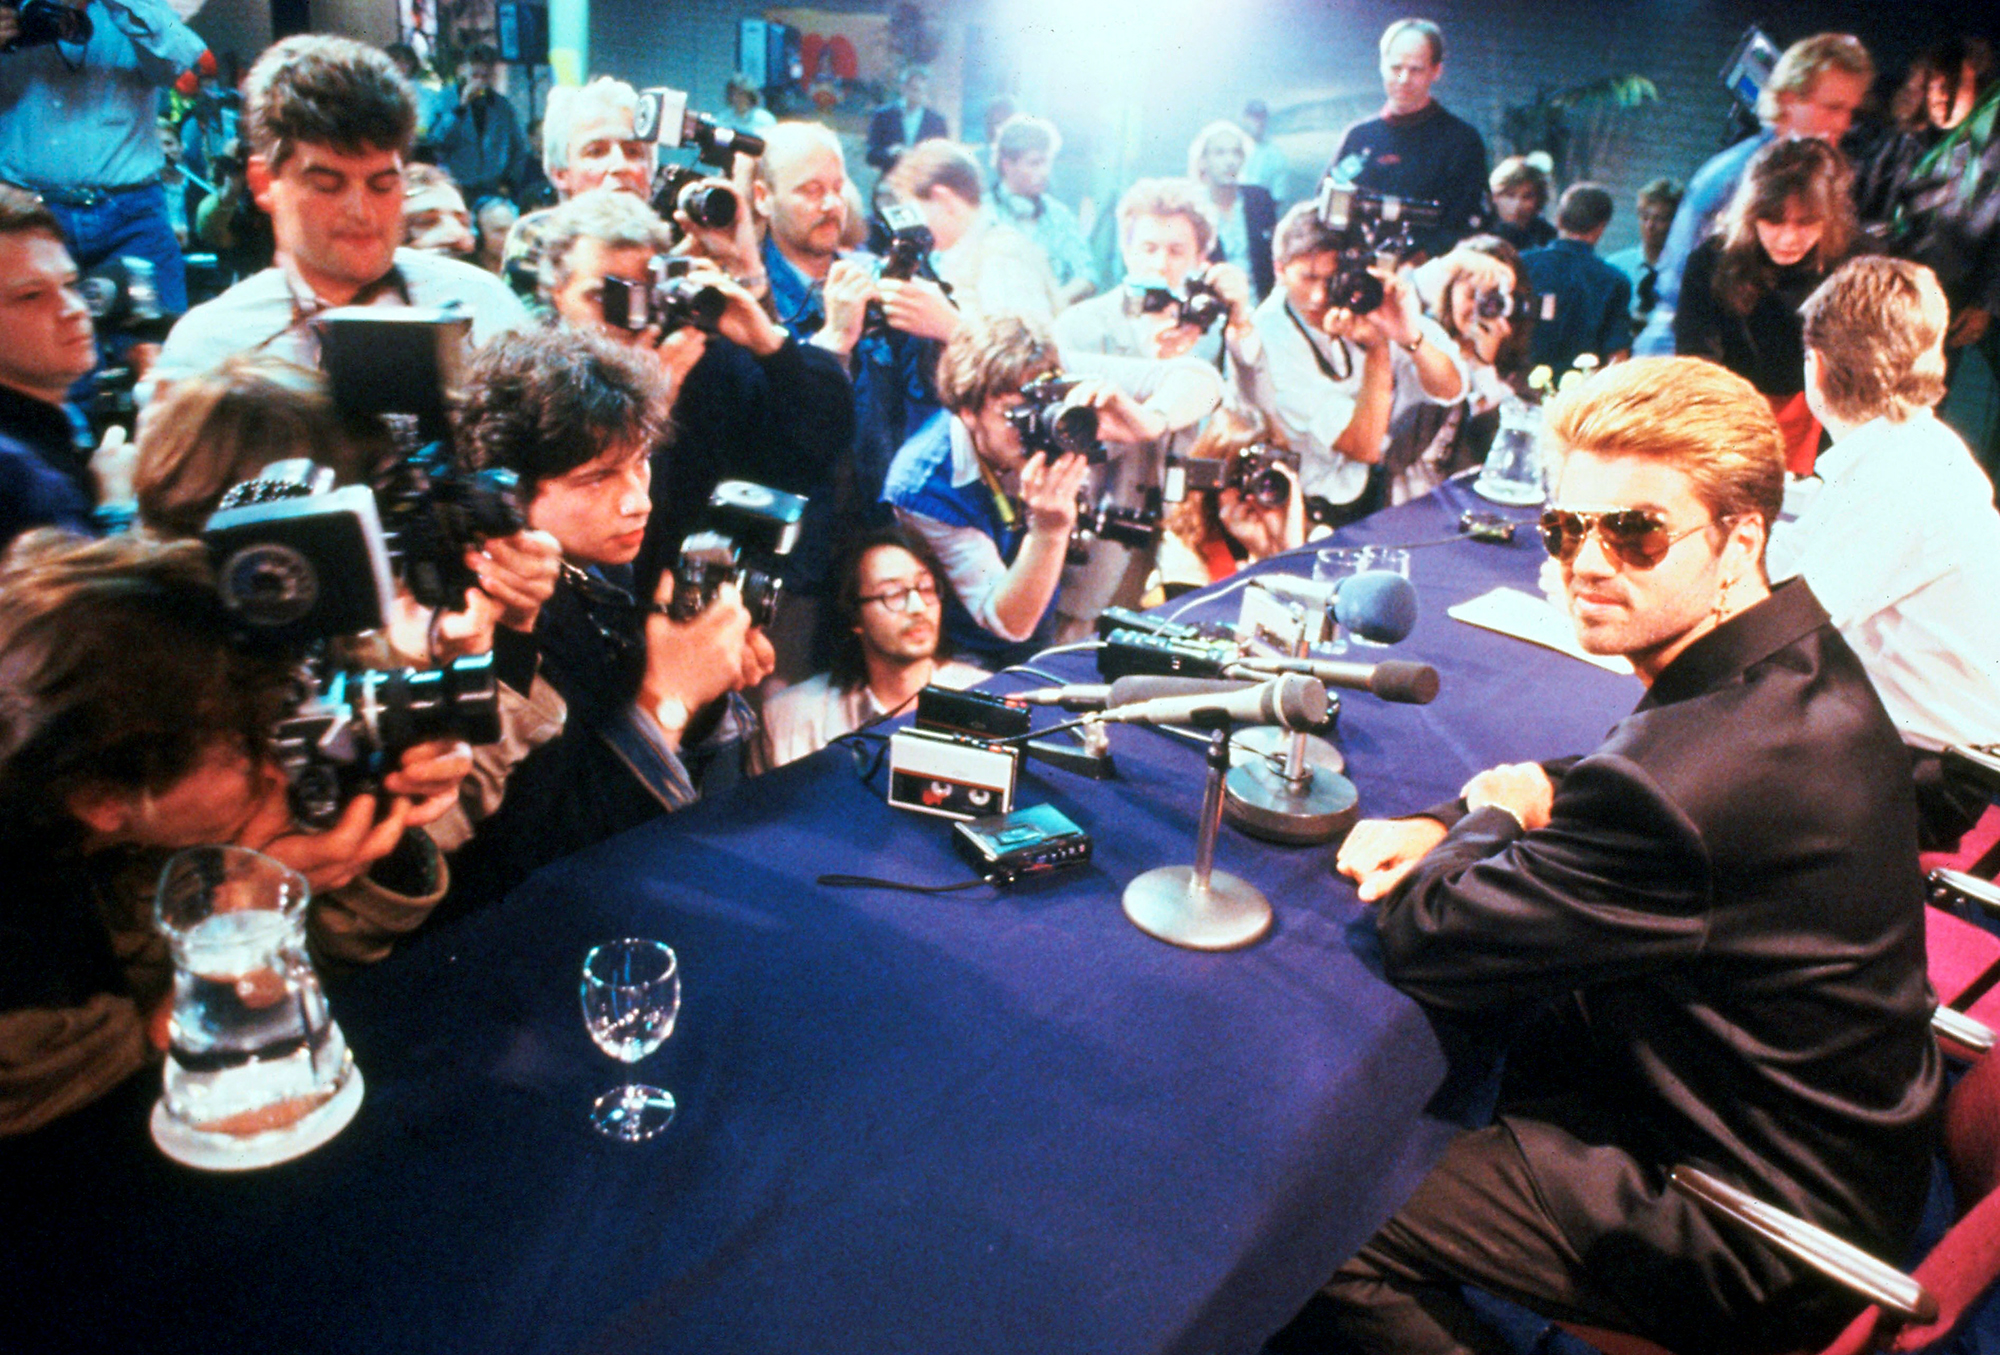 George Michael at a press conference in Japan, March 1988.